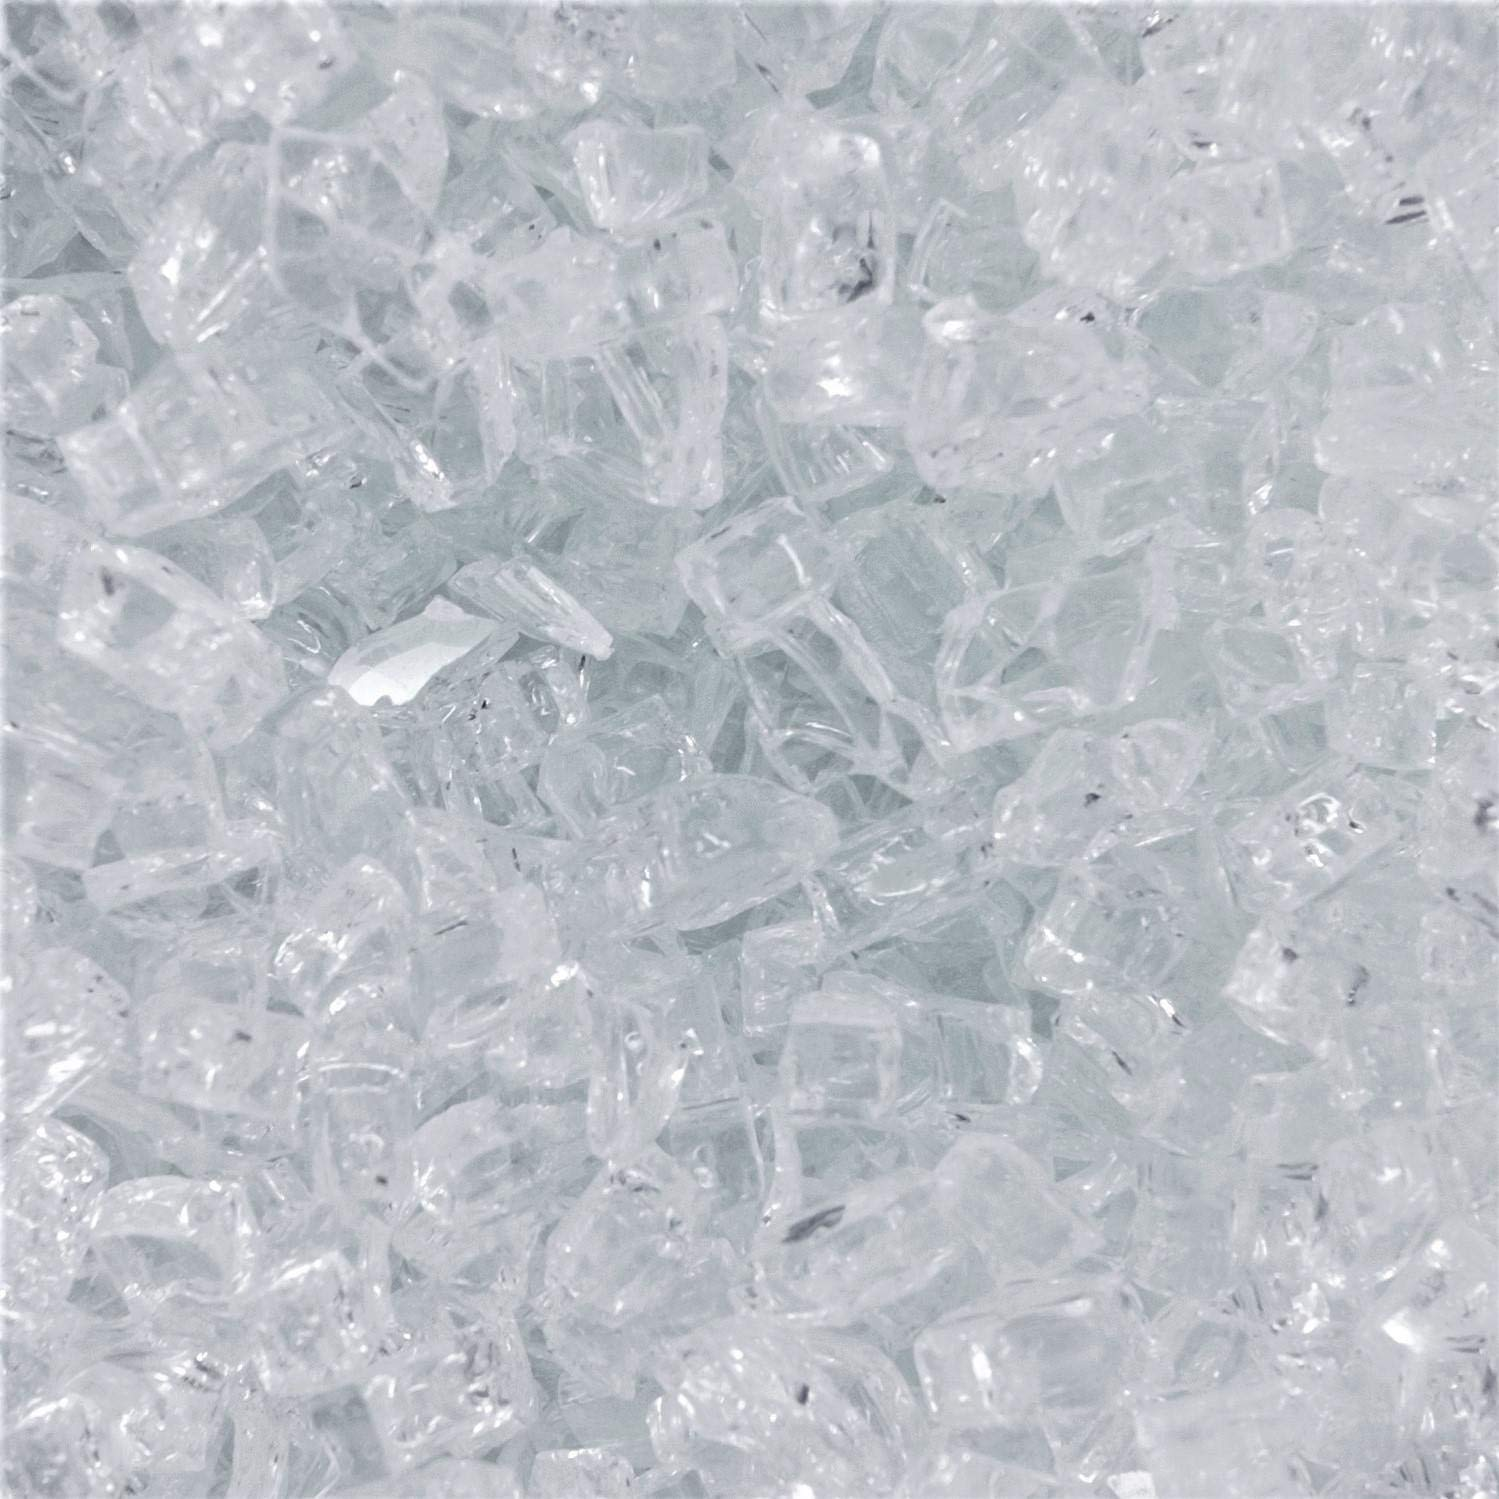 Lakeview Outdoor Designs 1/4-Inch Diamond Clear Fire Glass - 90 Pounds